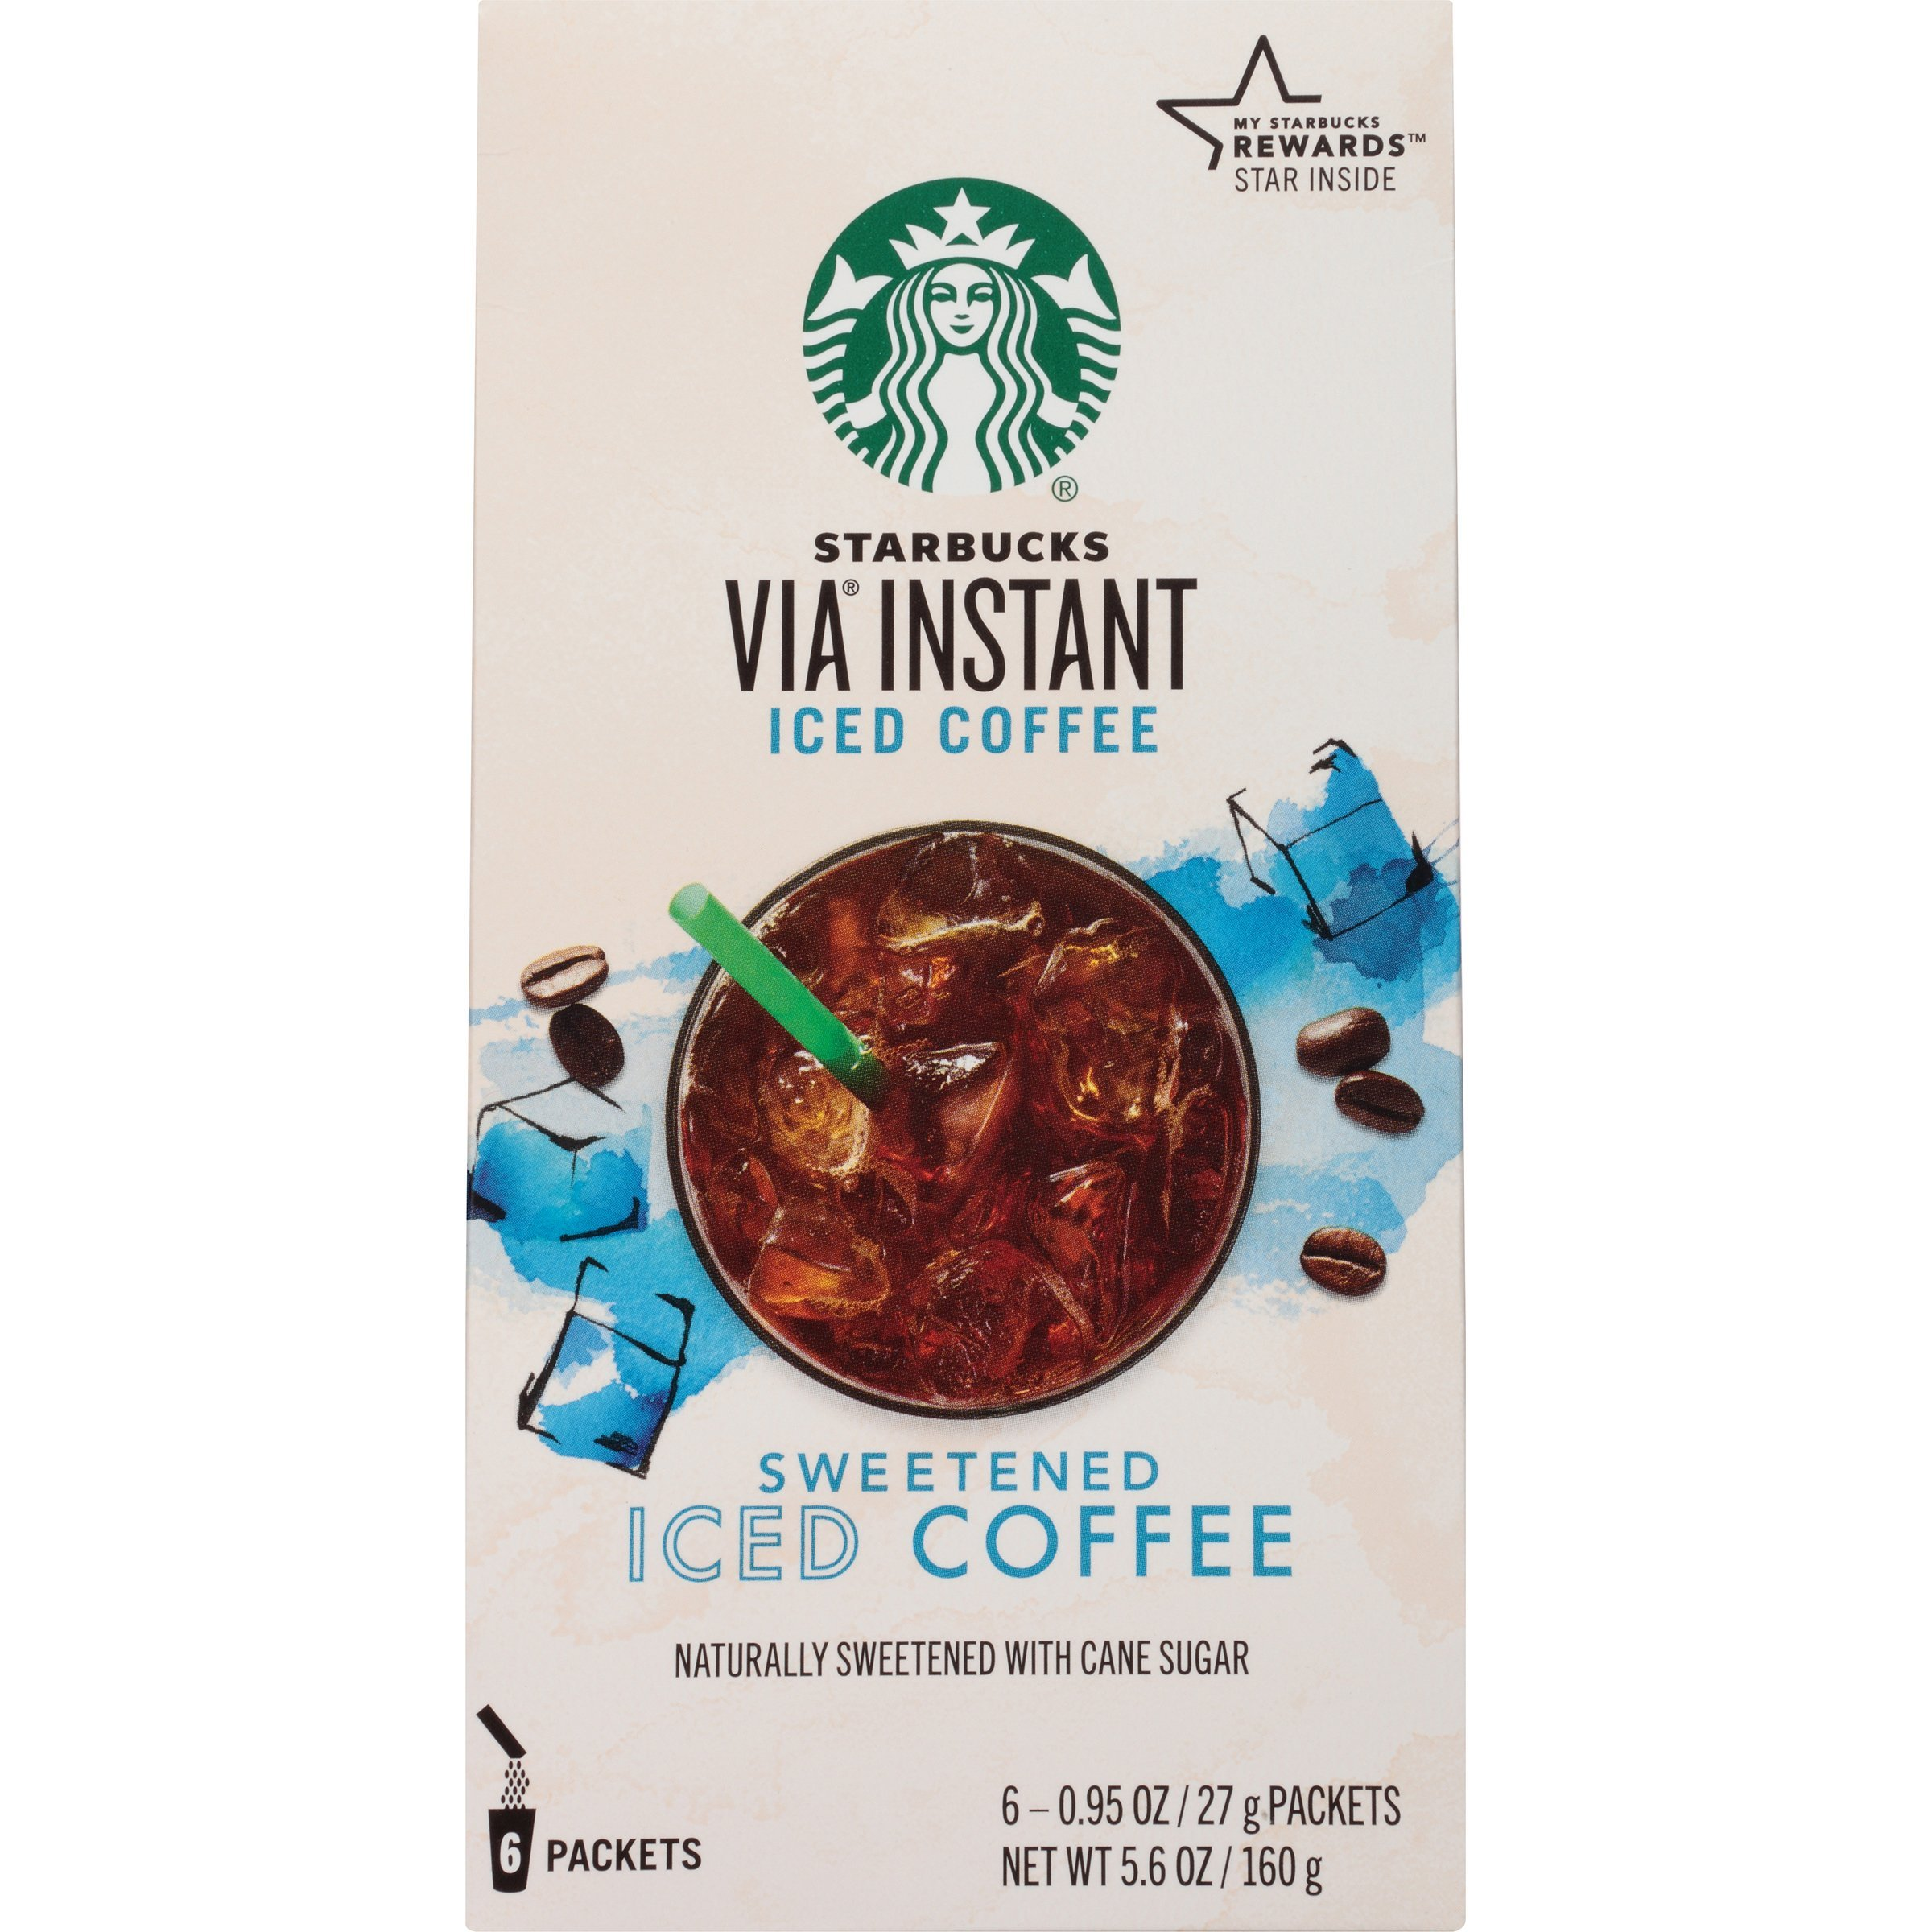 Starbucks VIA Instant Coffee, Sweetened Iced Coffee, 36 Count by Starbucks